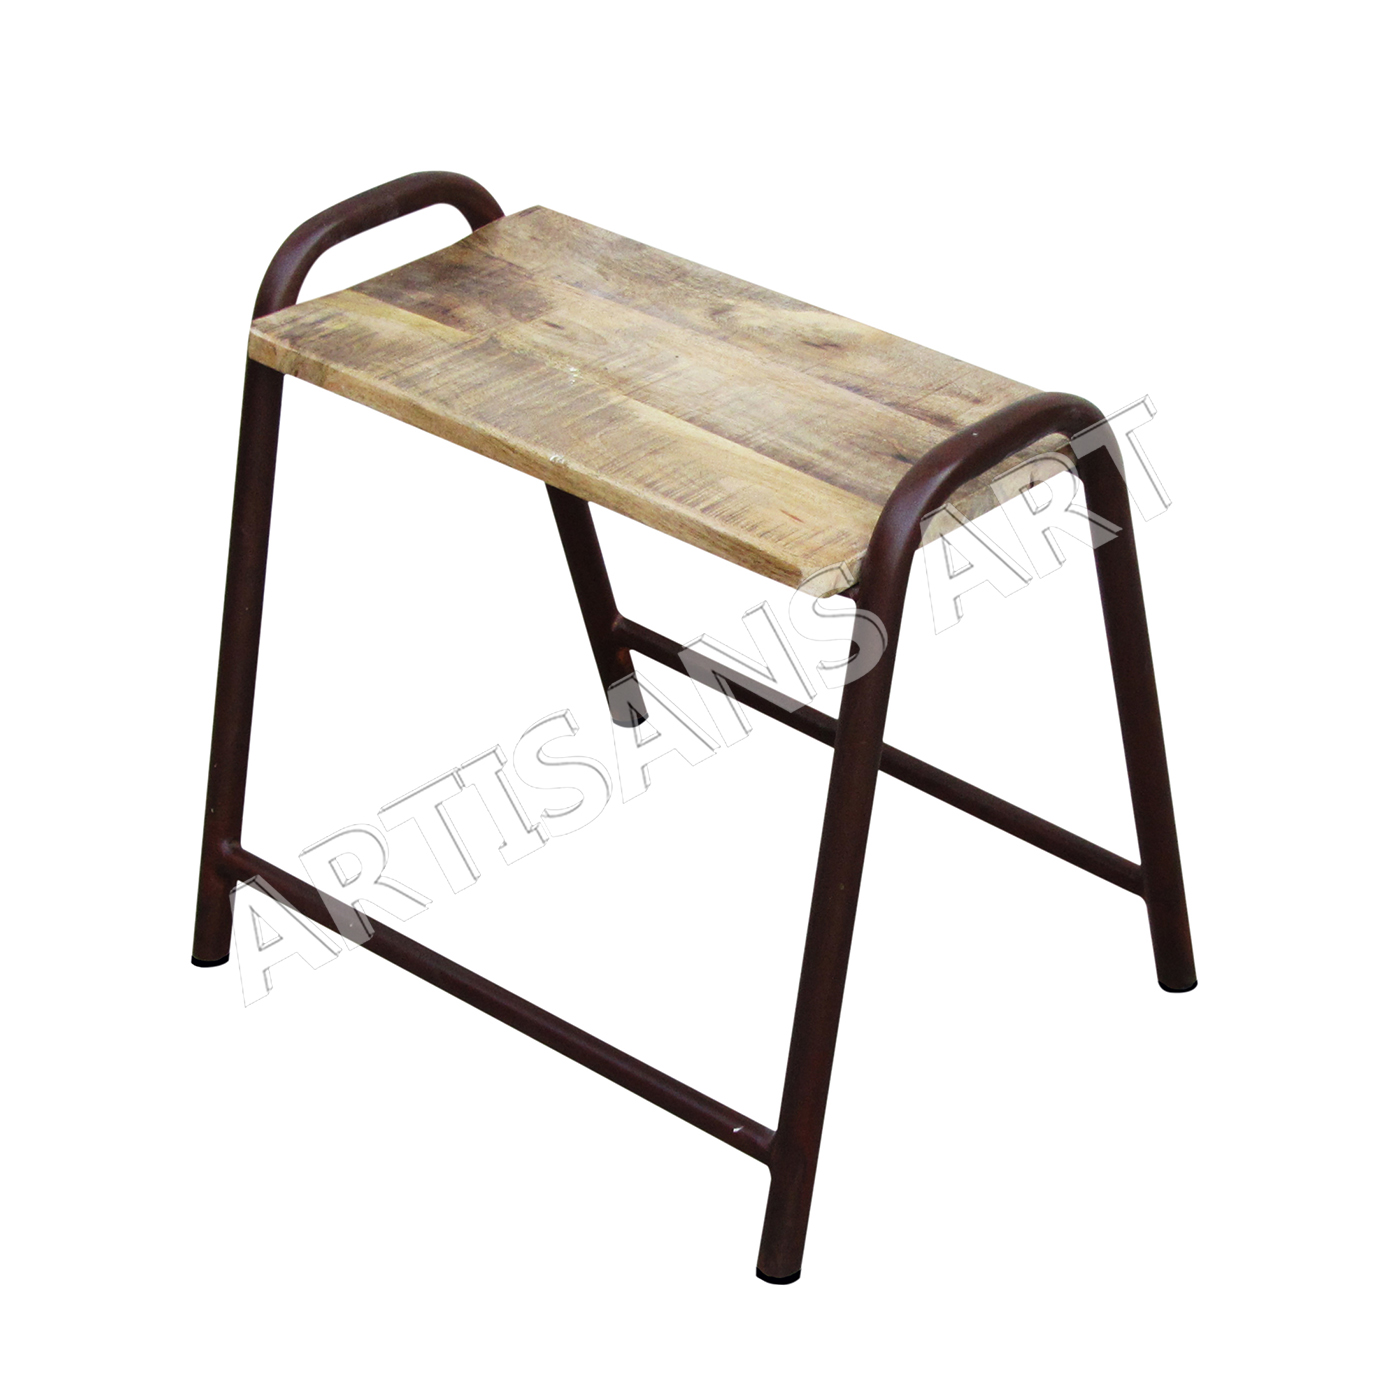 Surprising Rusty Finish Vintage Industrial Metal Stool With Mango Wood Top Originally Hand Molded Stool Seating Furniture Buy Heavy Pipe Vintage Stack Able Machost Co Dining Chair Design Ideas Machostcouk